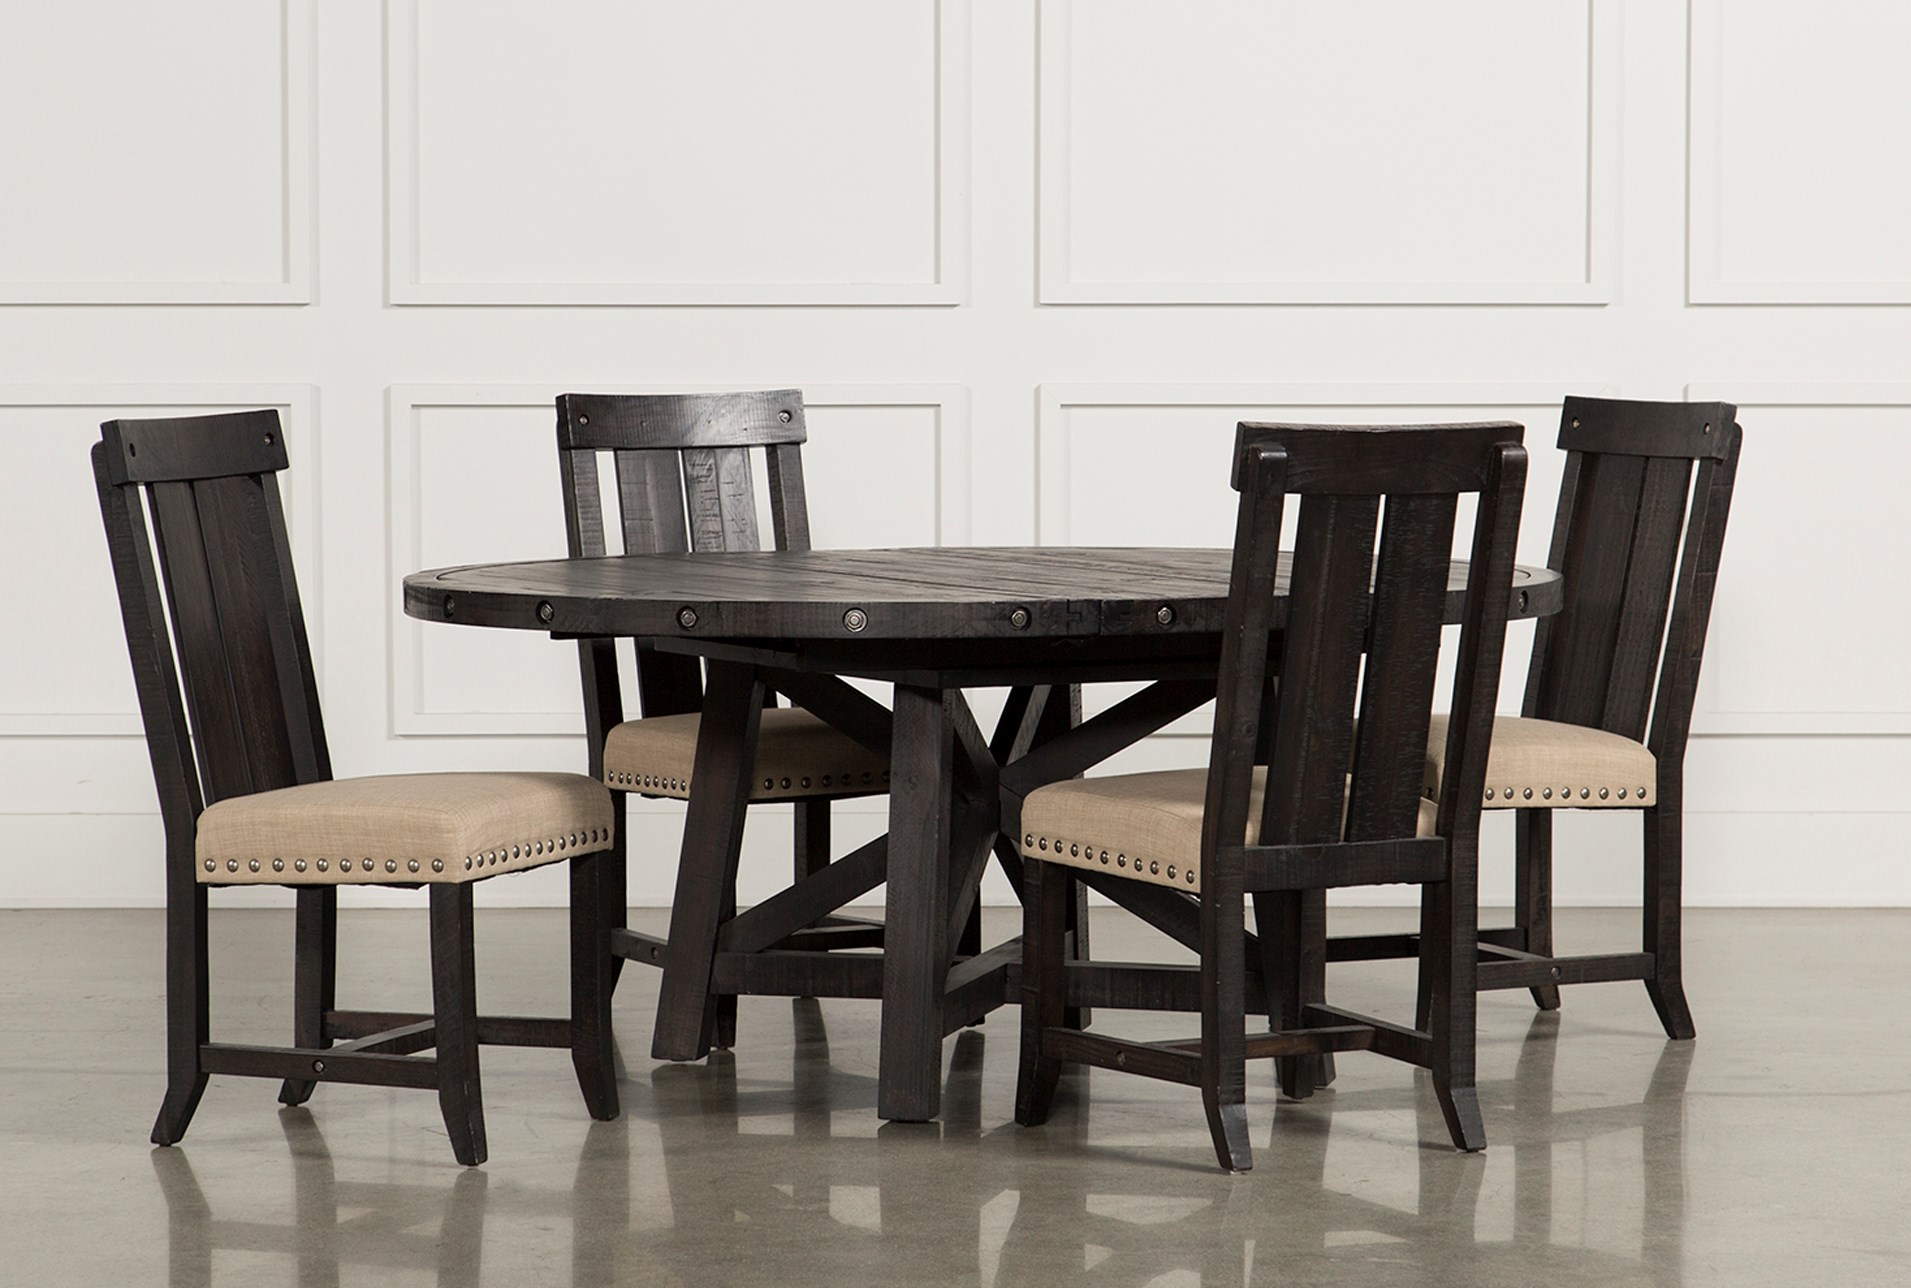 gray dining room table. Jaxon 5 Piece Extension Round Dining Set W/Wood Chairs (Qty: 1) Has Been Successfully Added To Your Cart. Gray Room Table